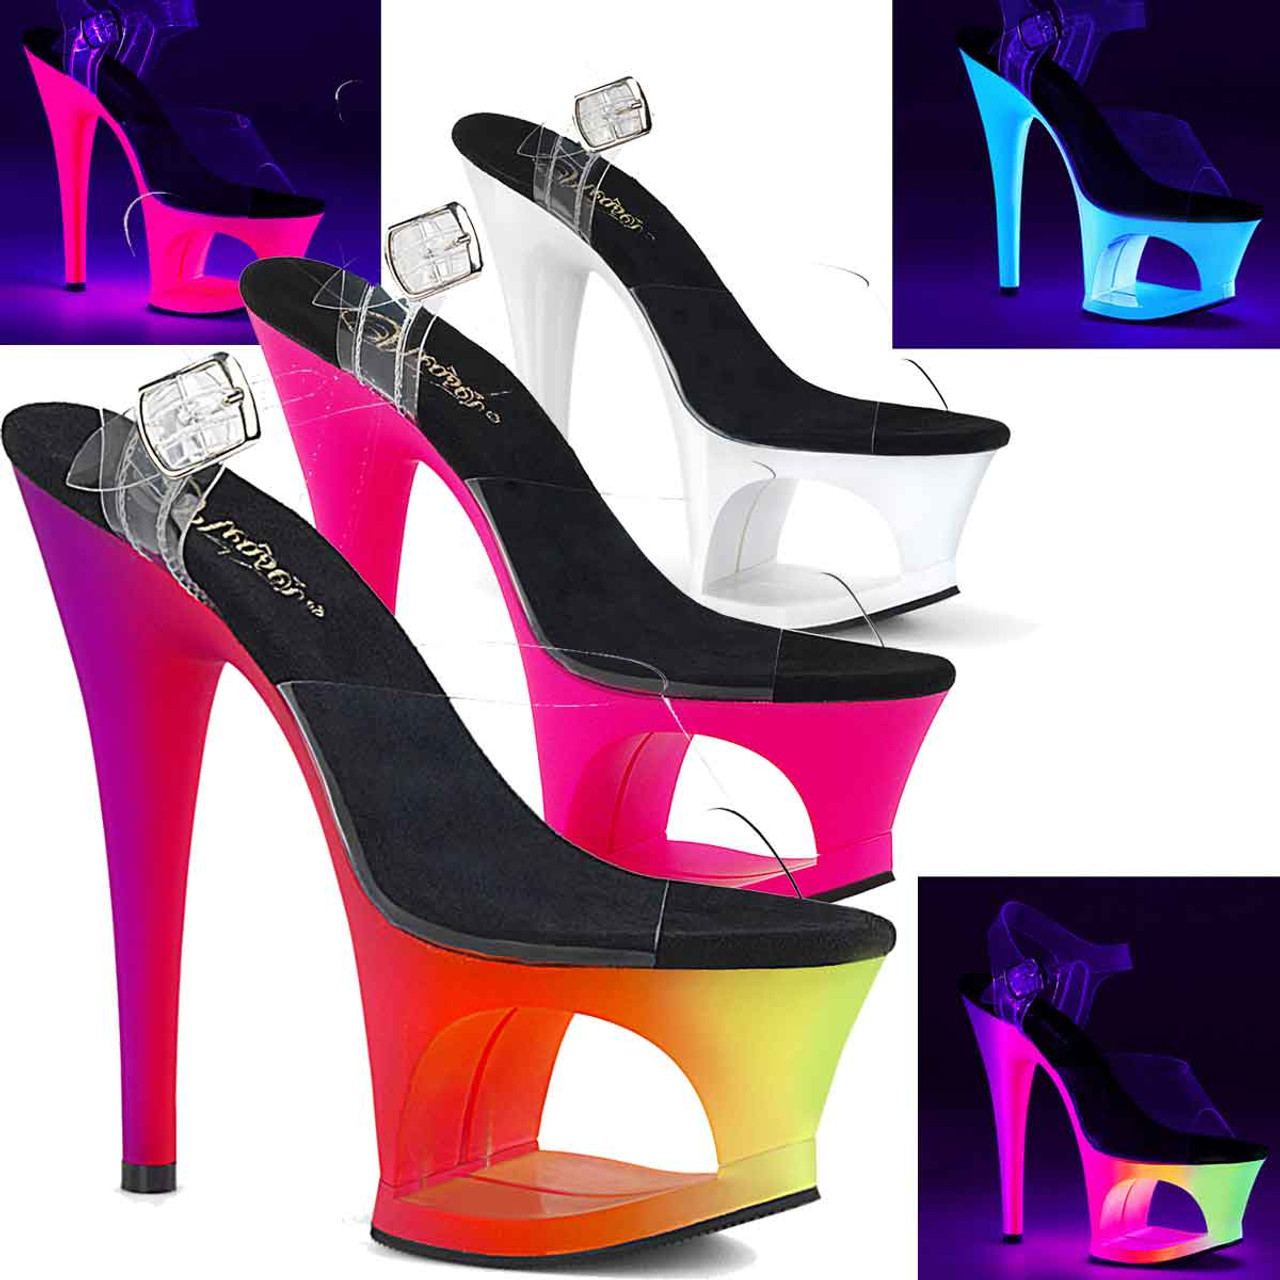 7 Inch Pole Dancing Shoes by Pleaser